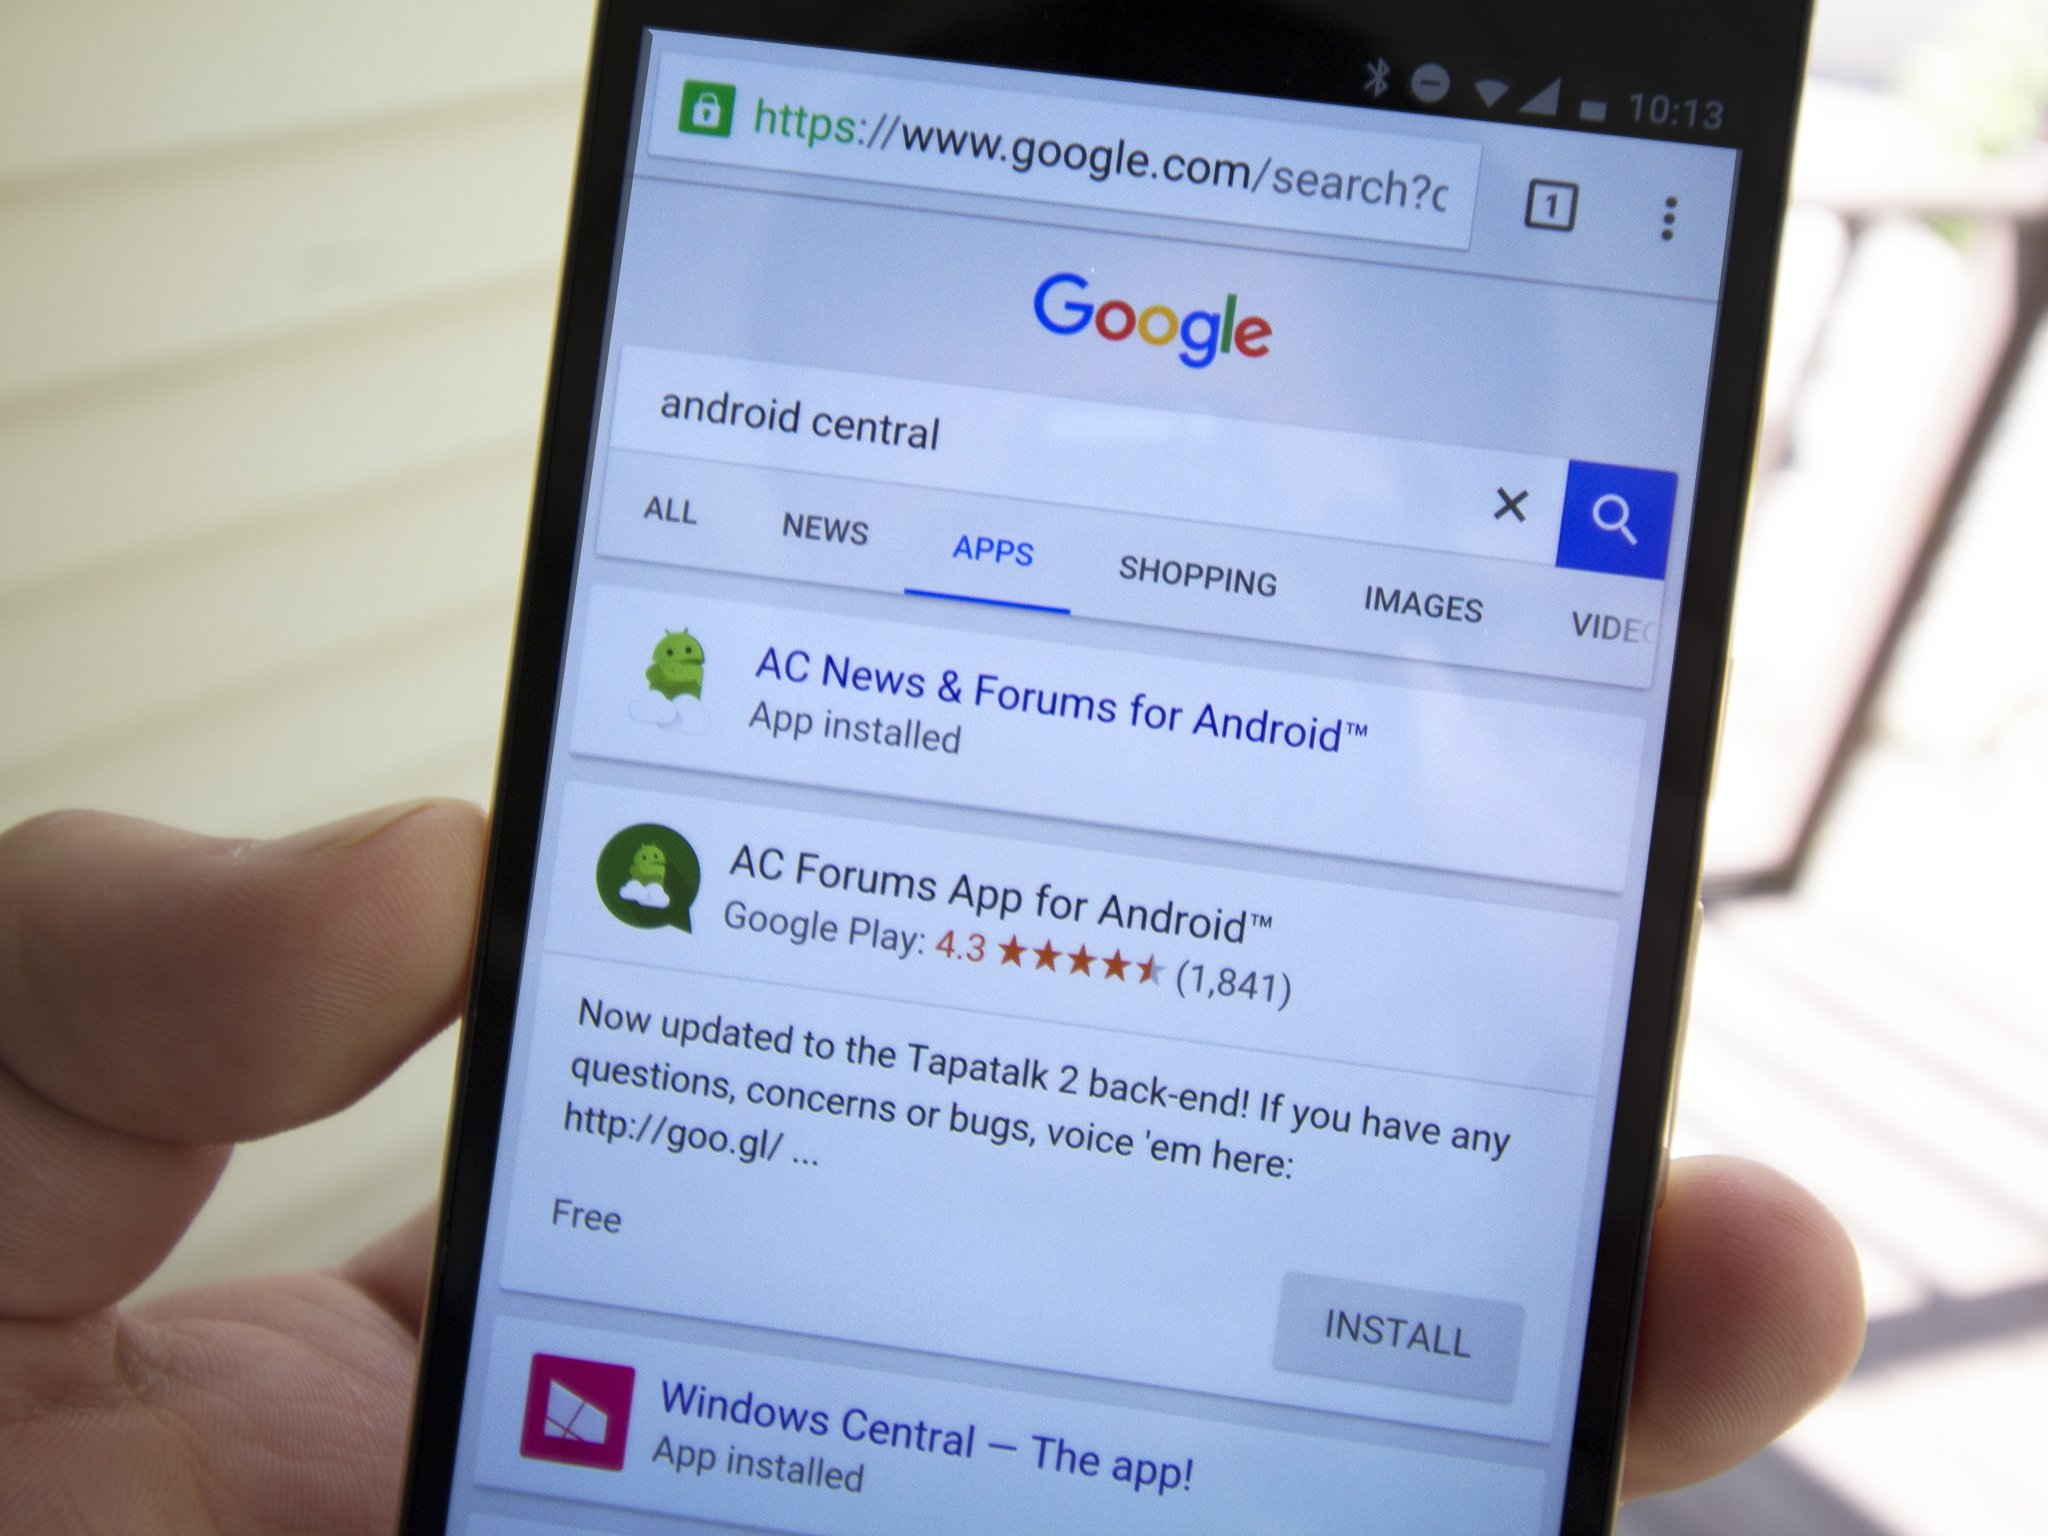 Apps in Google mobile search results